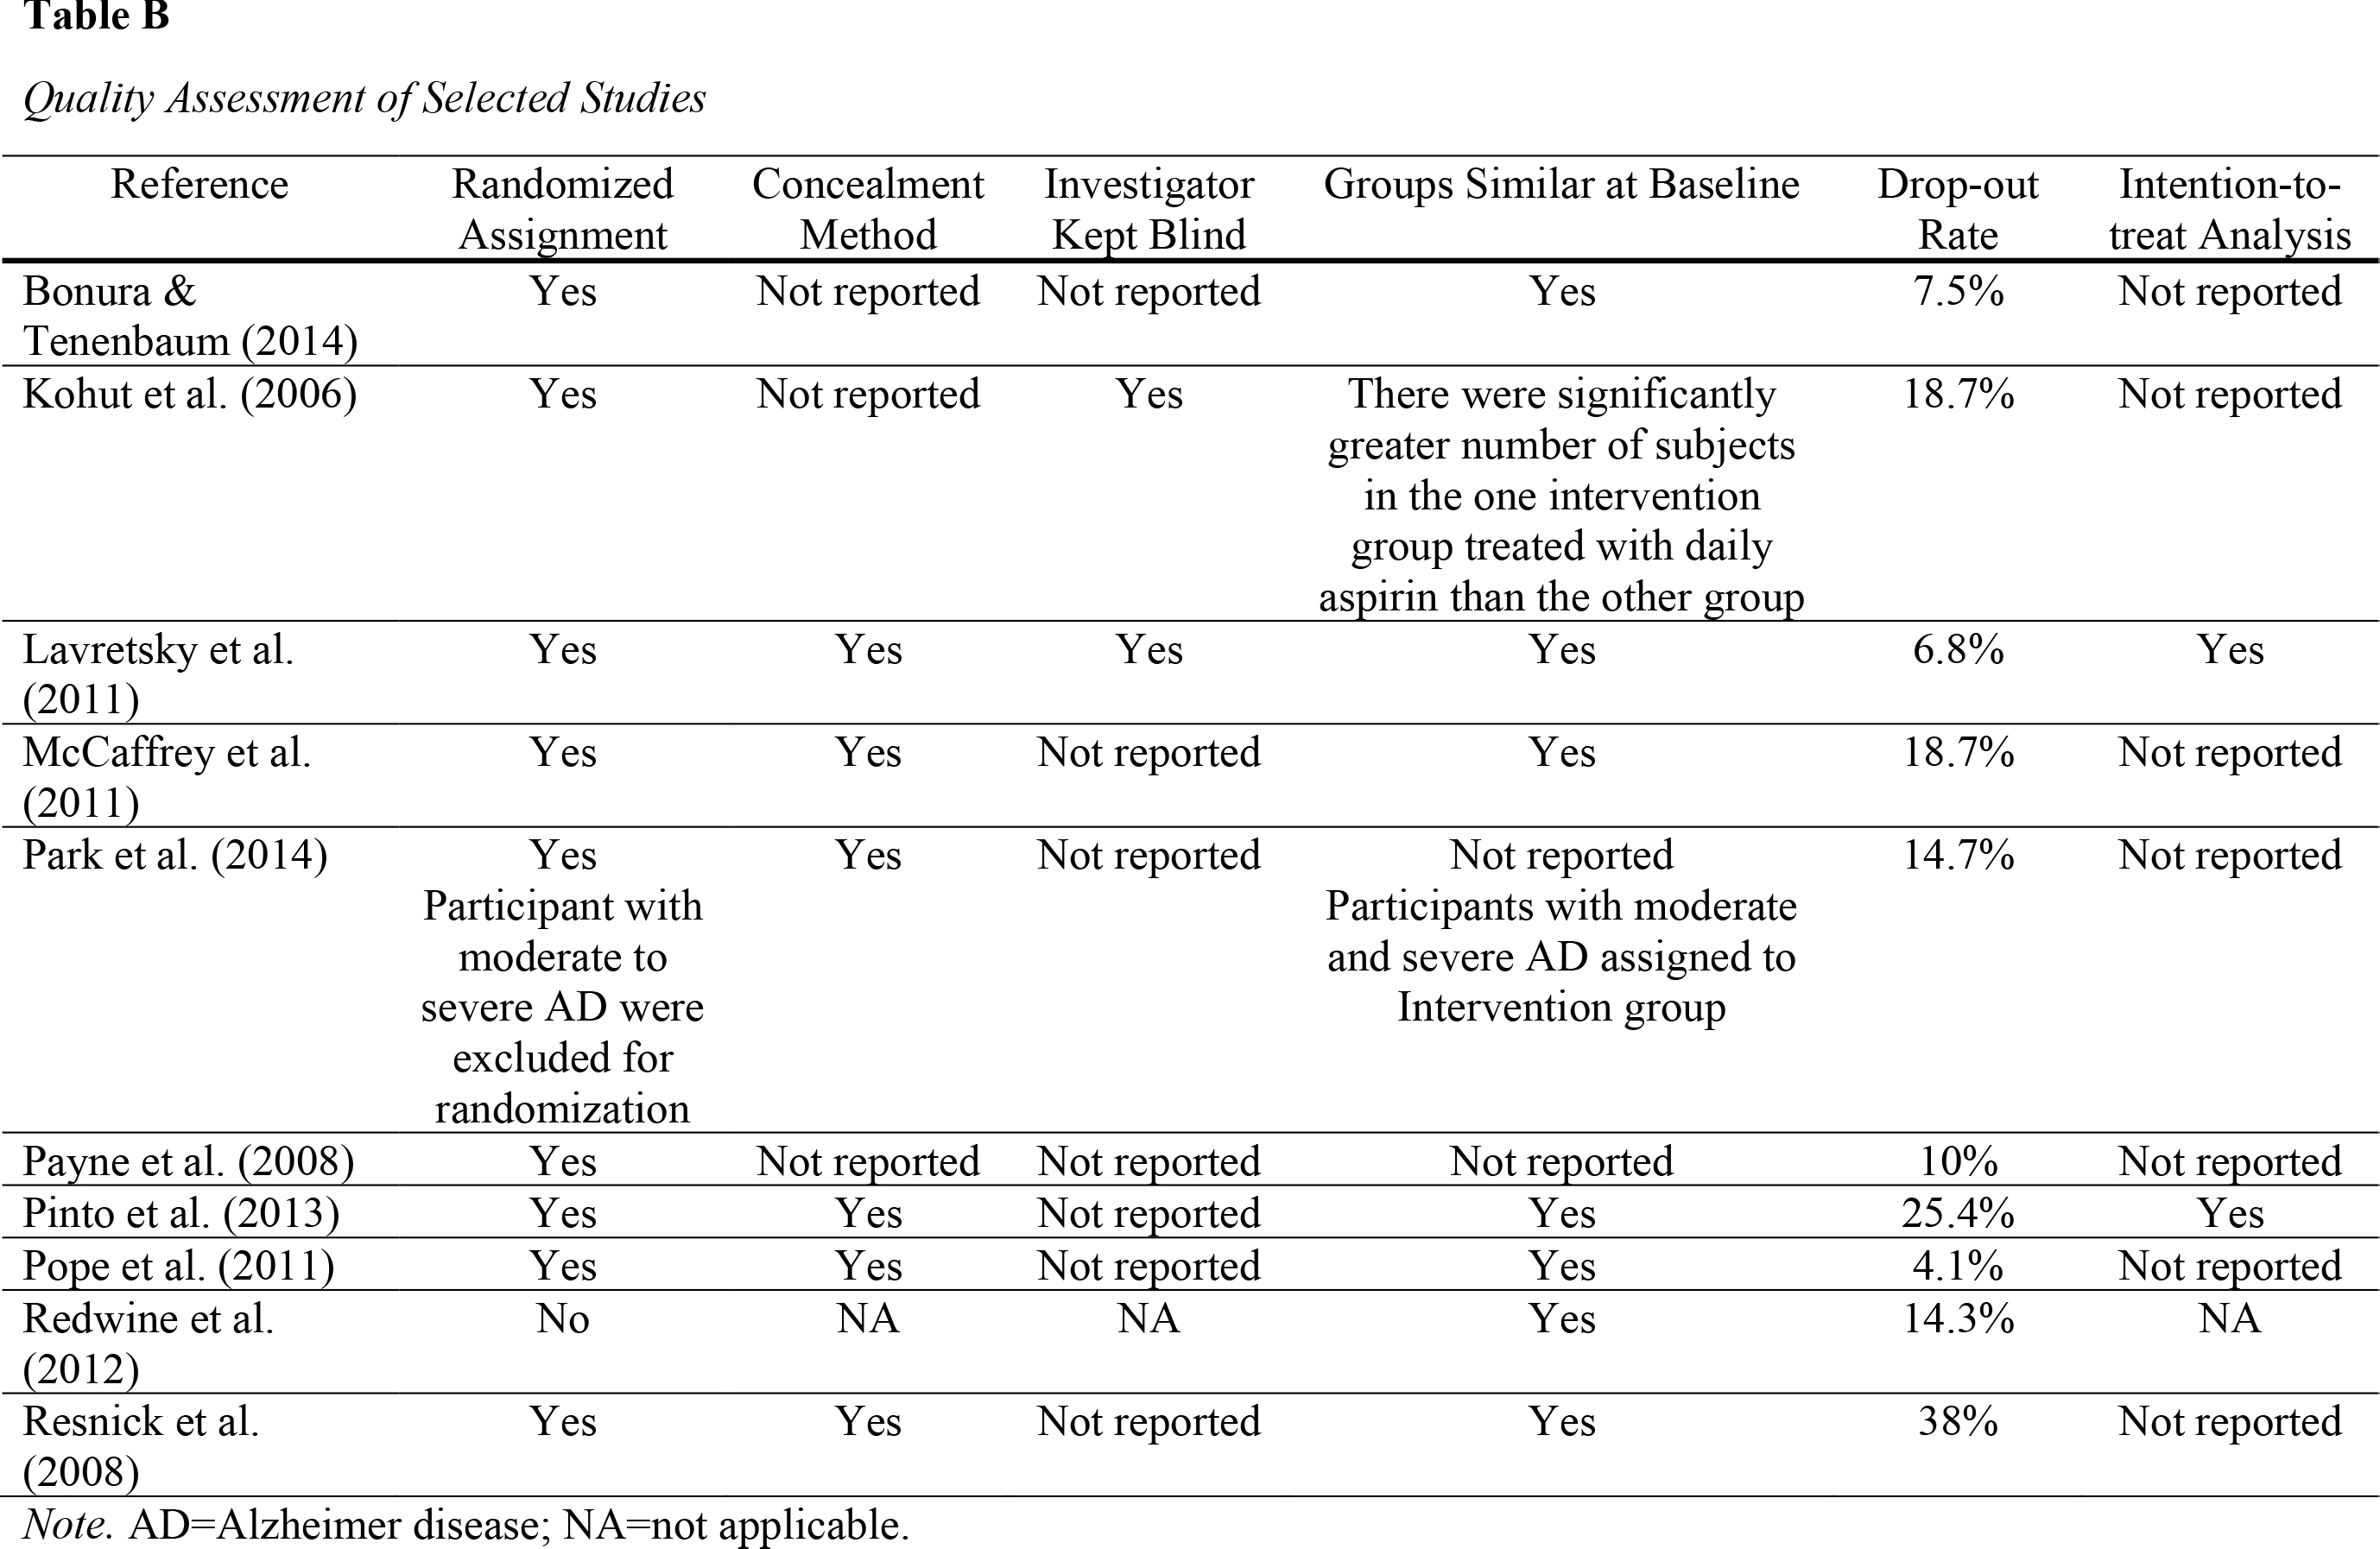 Quality Assessment of Selected Studies